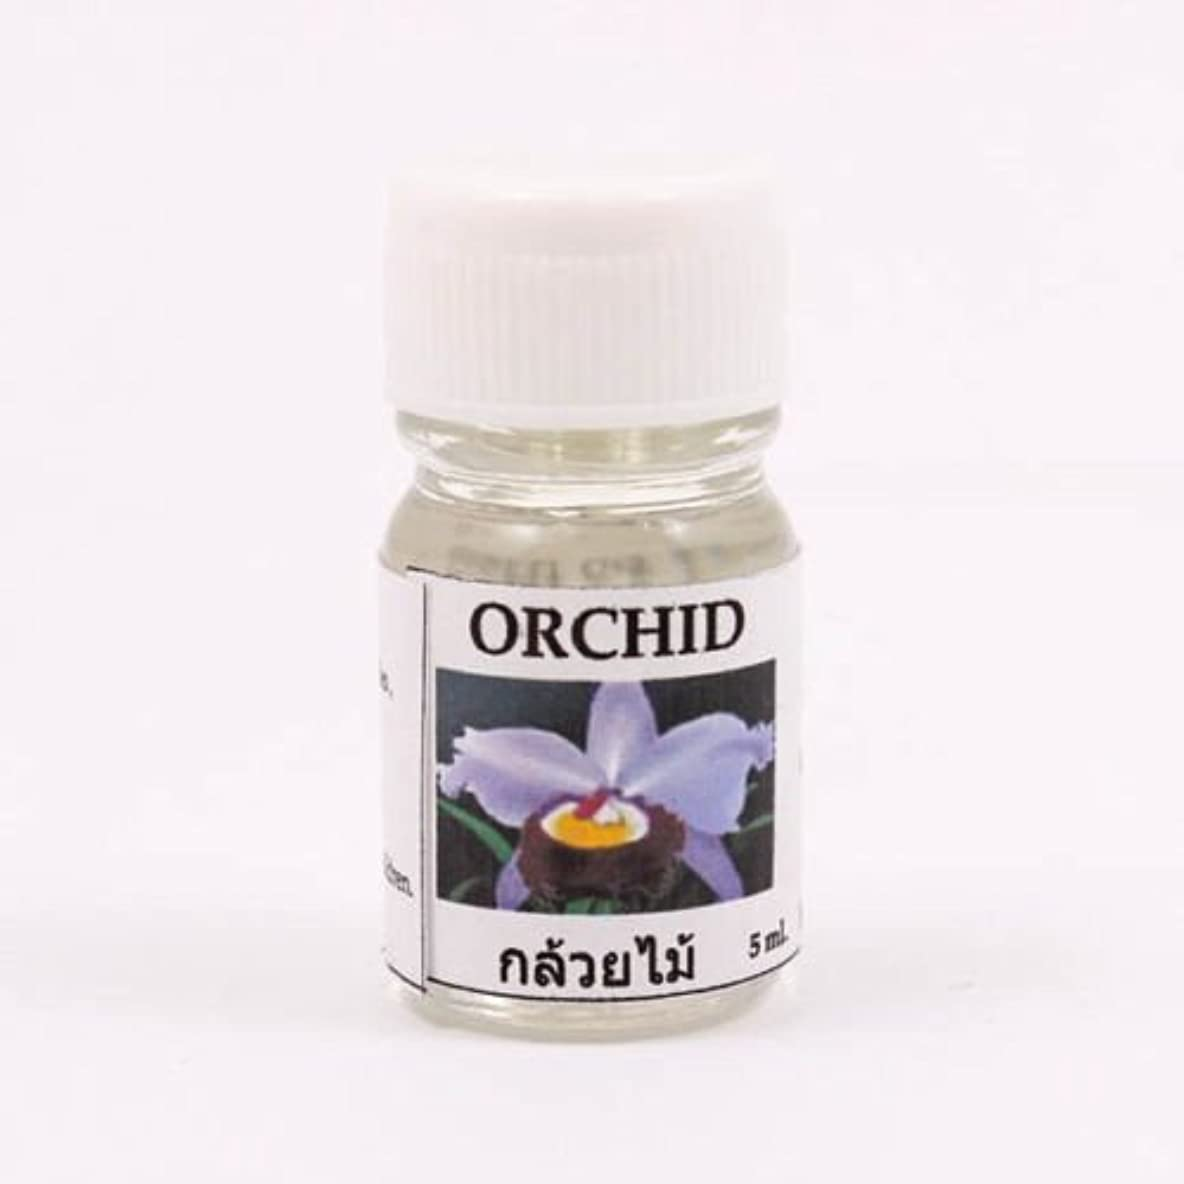 6X Orchid Aroma Fragrance Essential Oil 5ML. (cc) Diffuser Burner Therapy